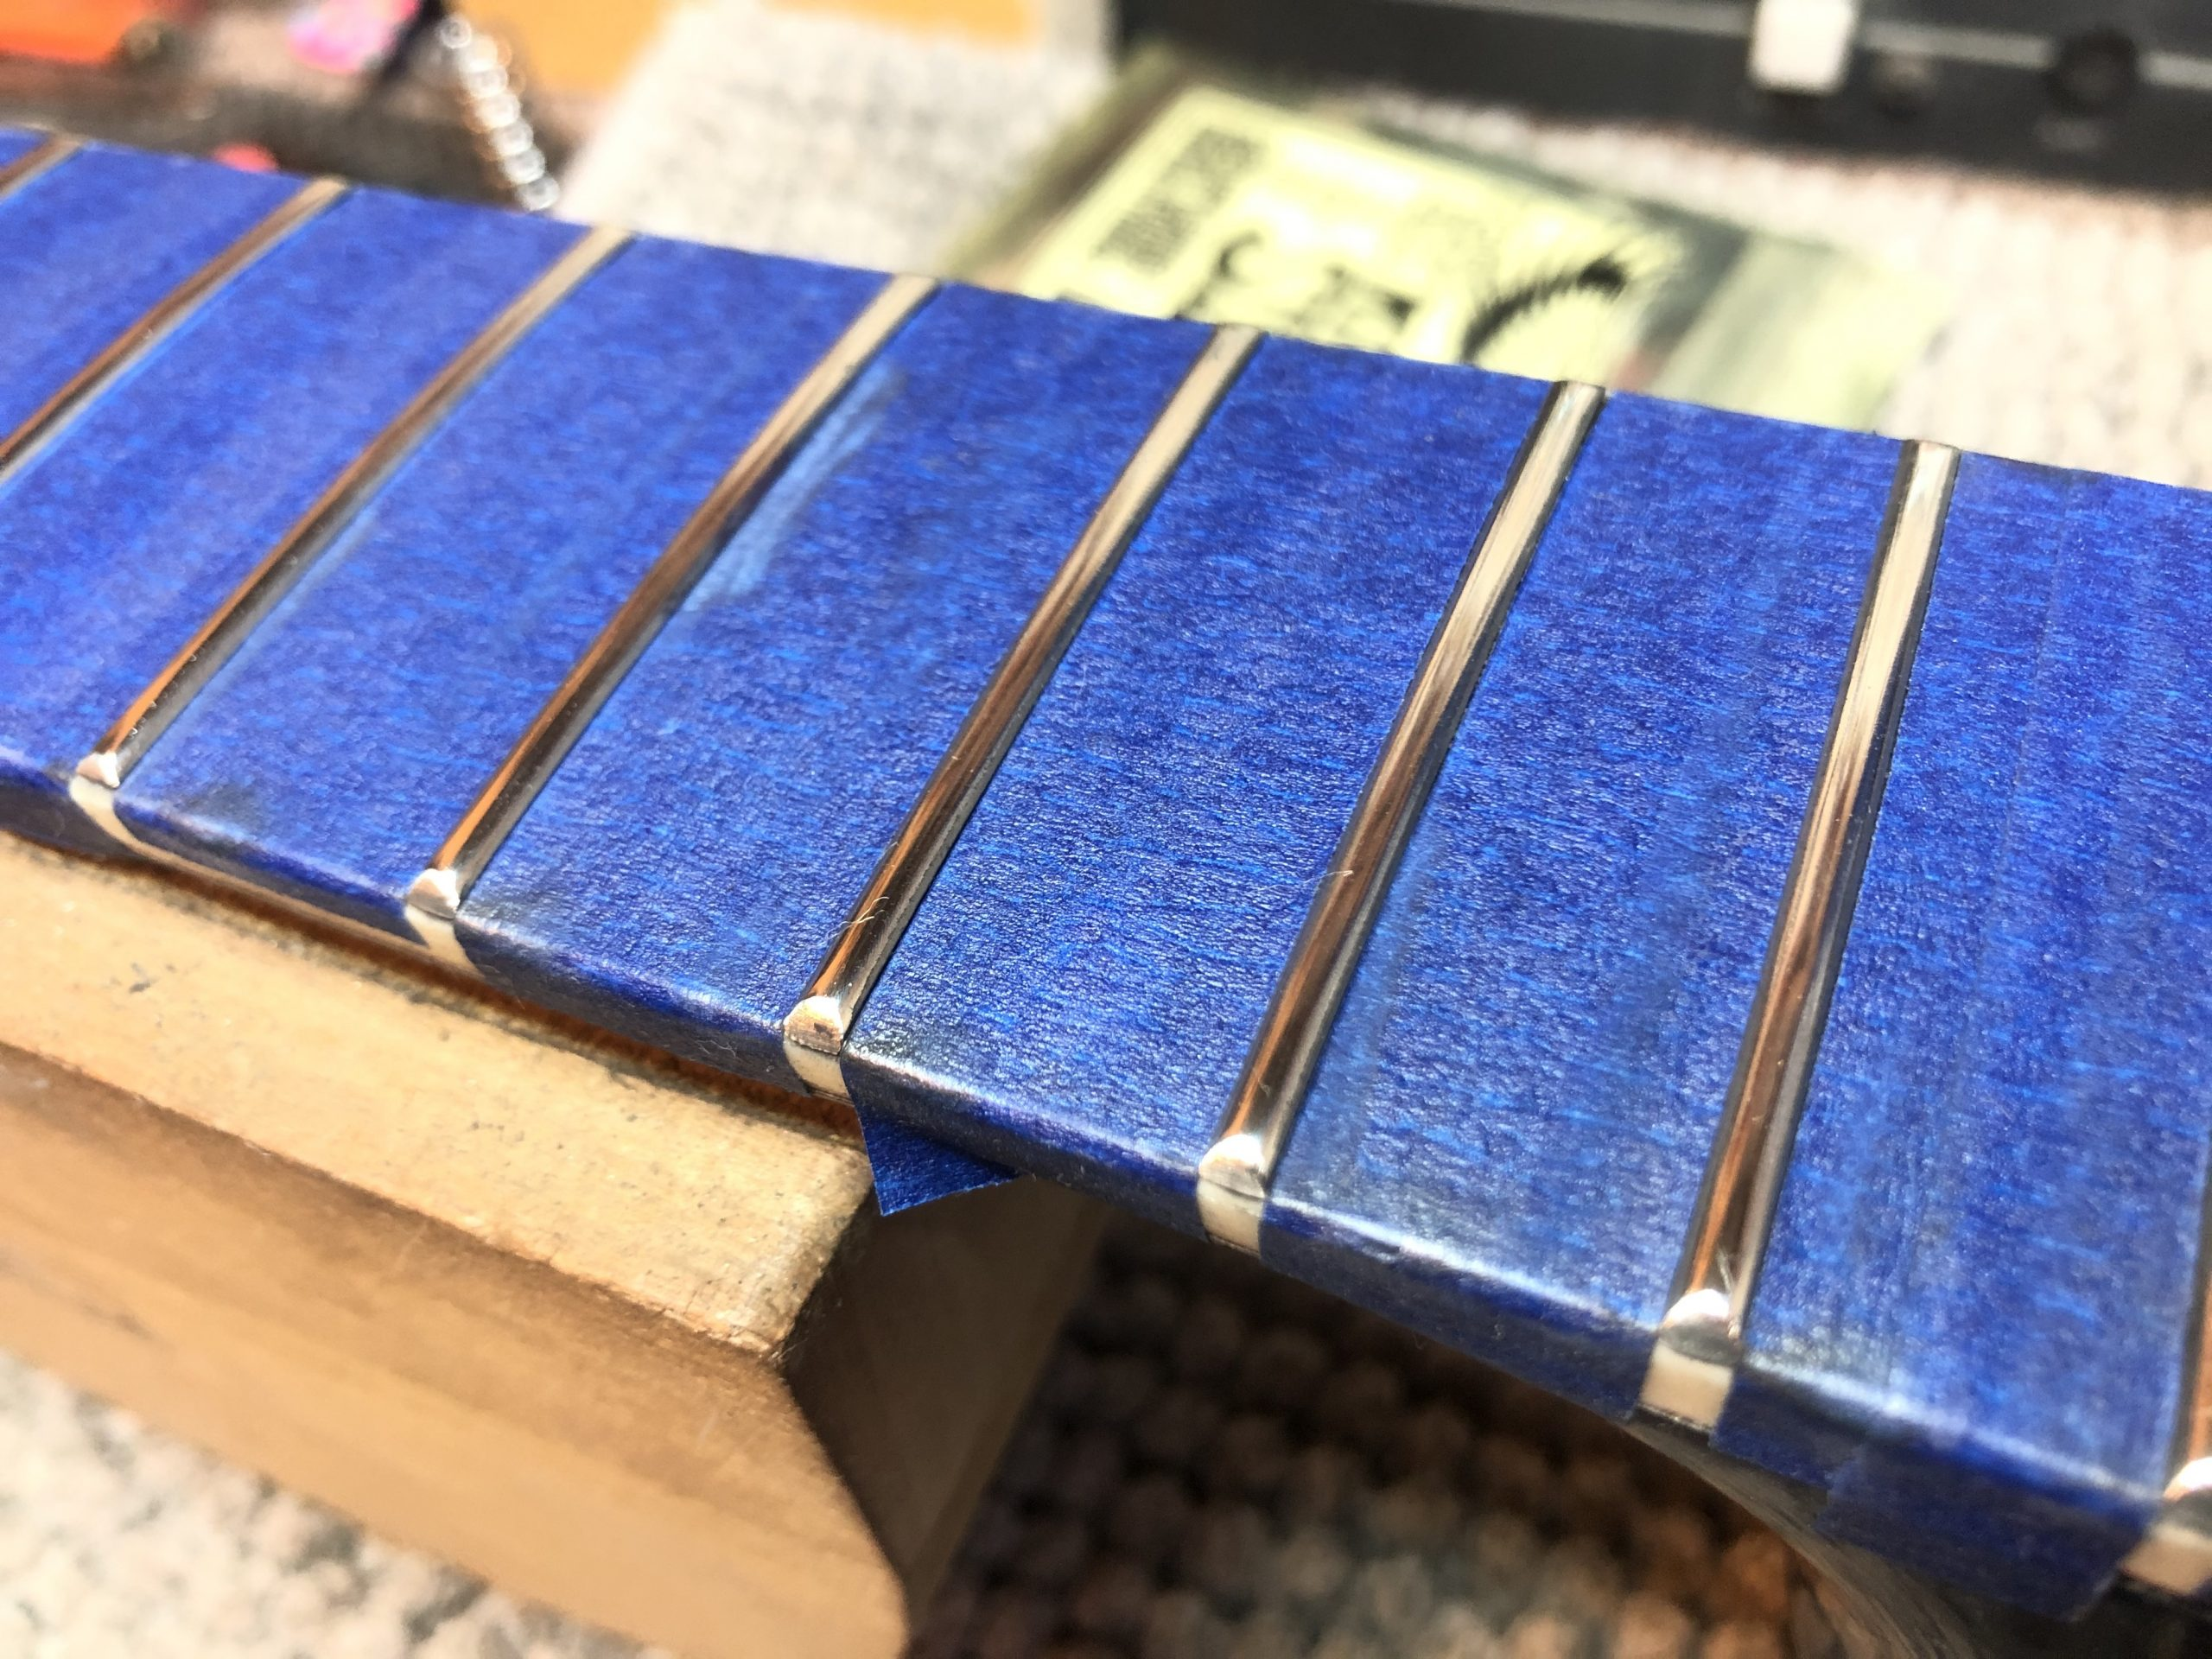 Levelled frets, now crowned and polished